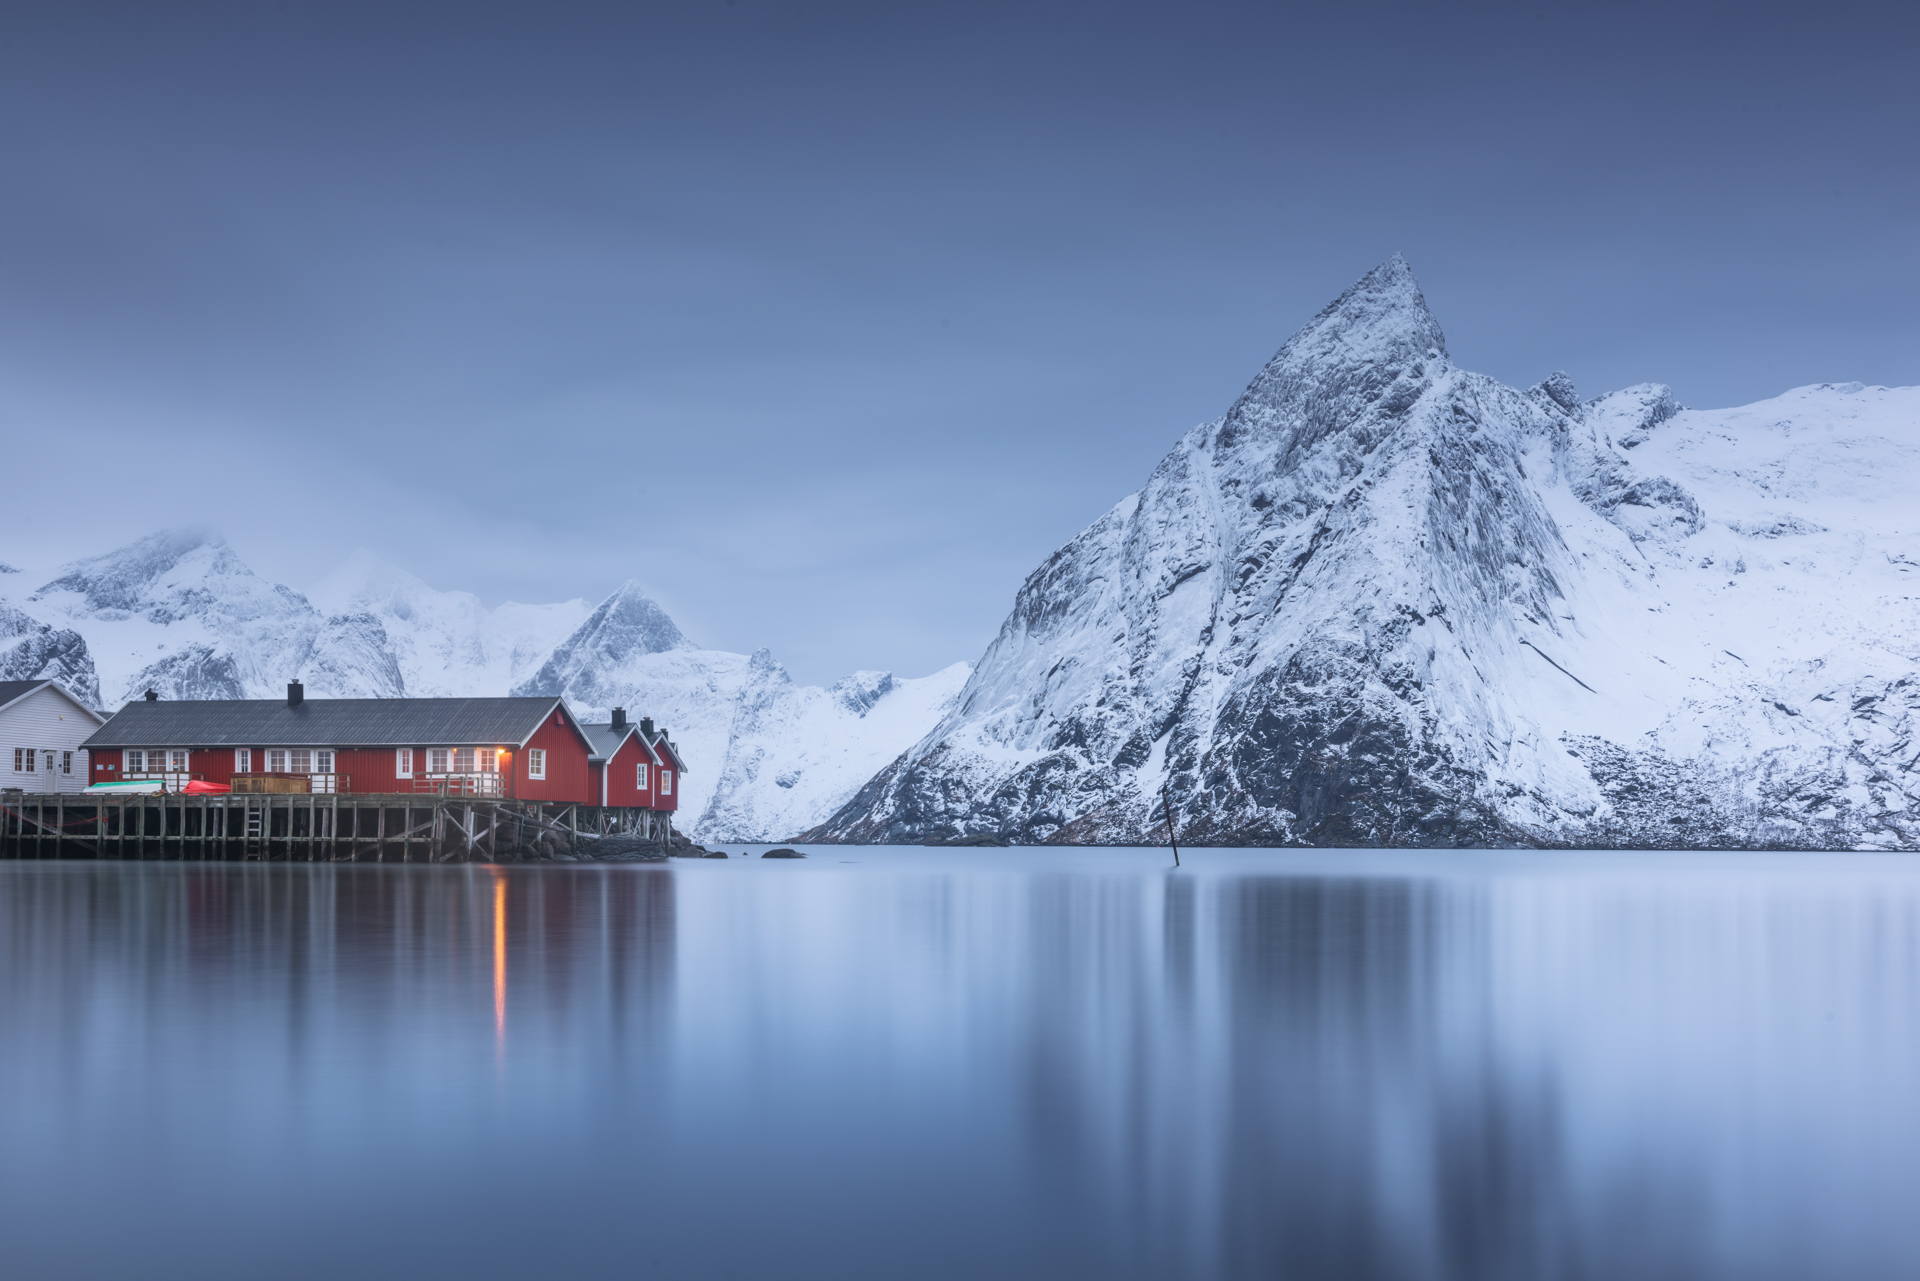 15 Photos That Will Make You Want to Visit Northern Norway